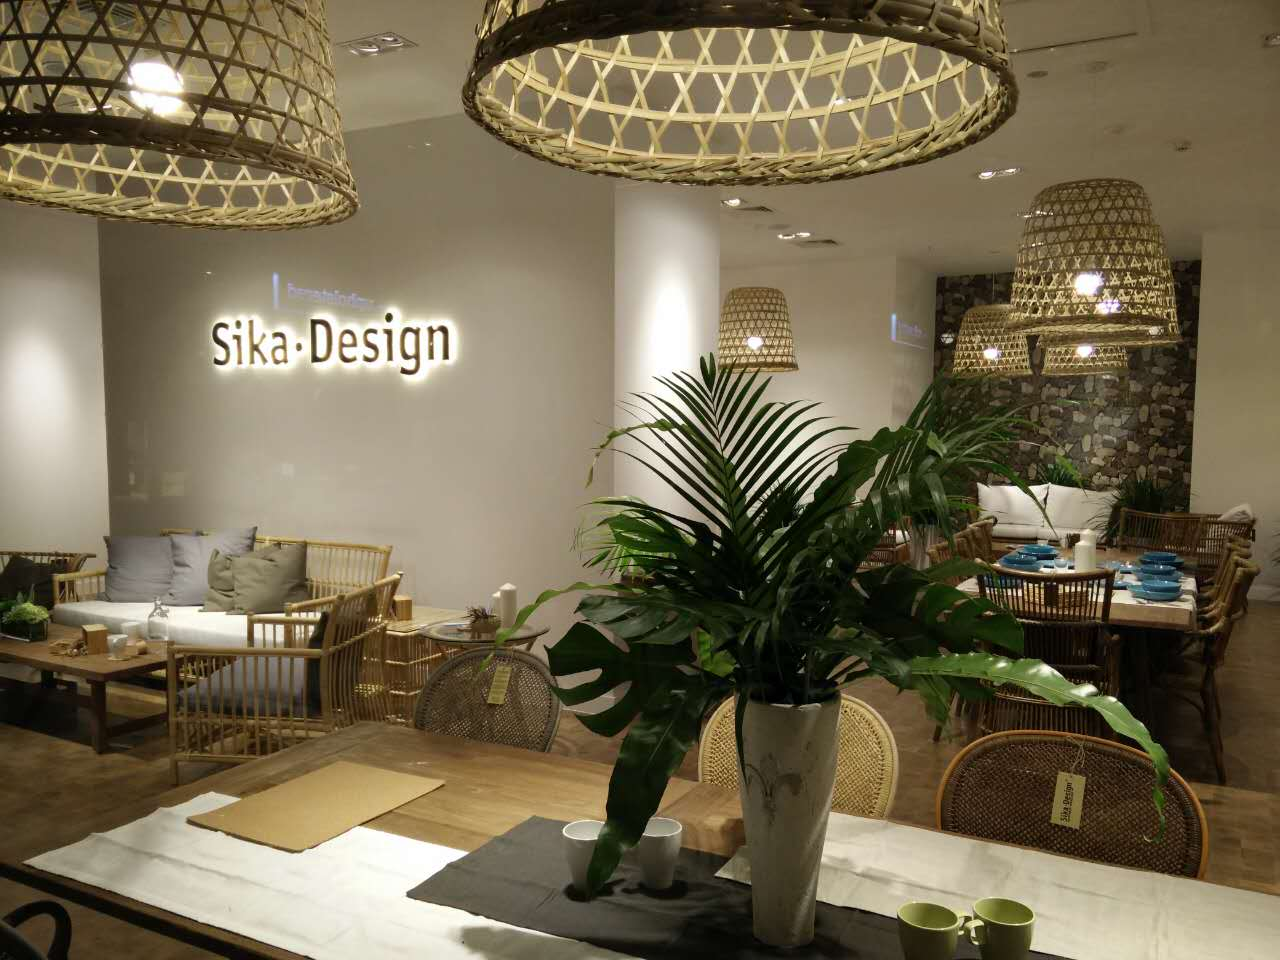 stort kinesisk butikseventyr for danske sika design retailnews. Black Bedroom Furniture Sets. Home Design Ideas